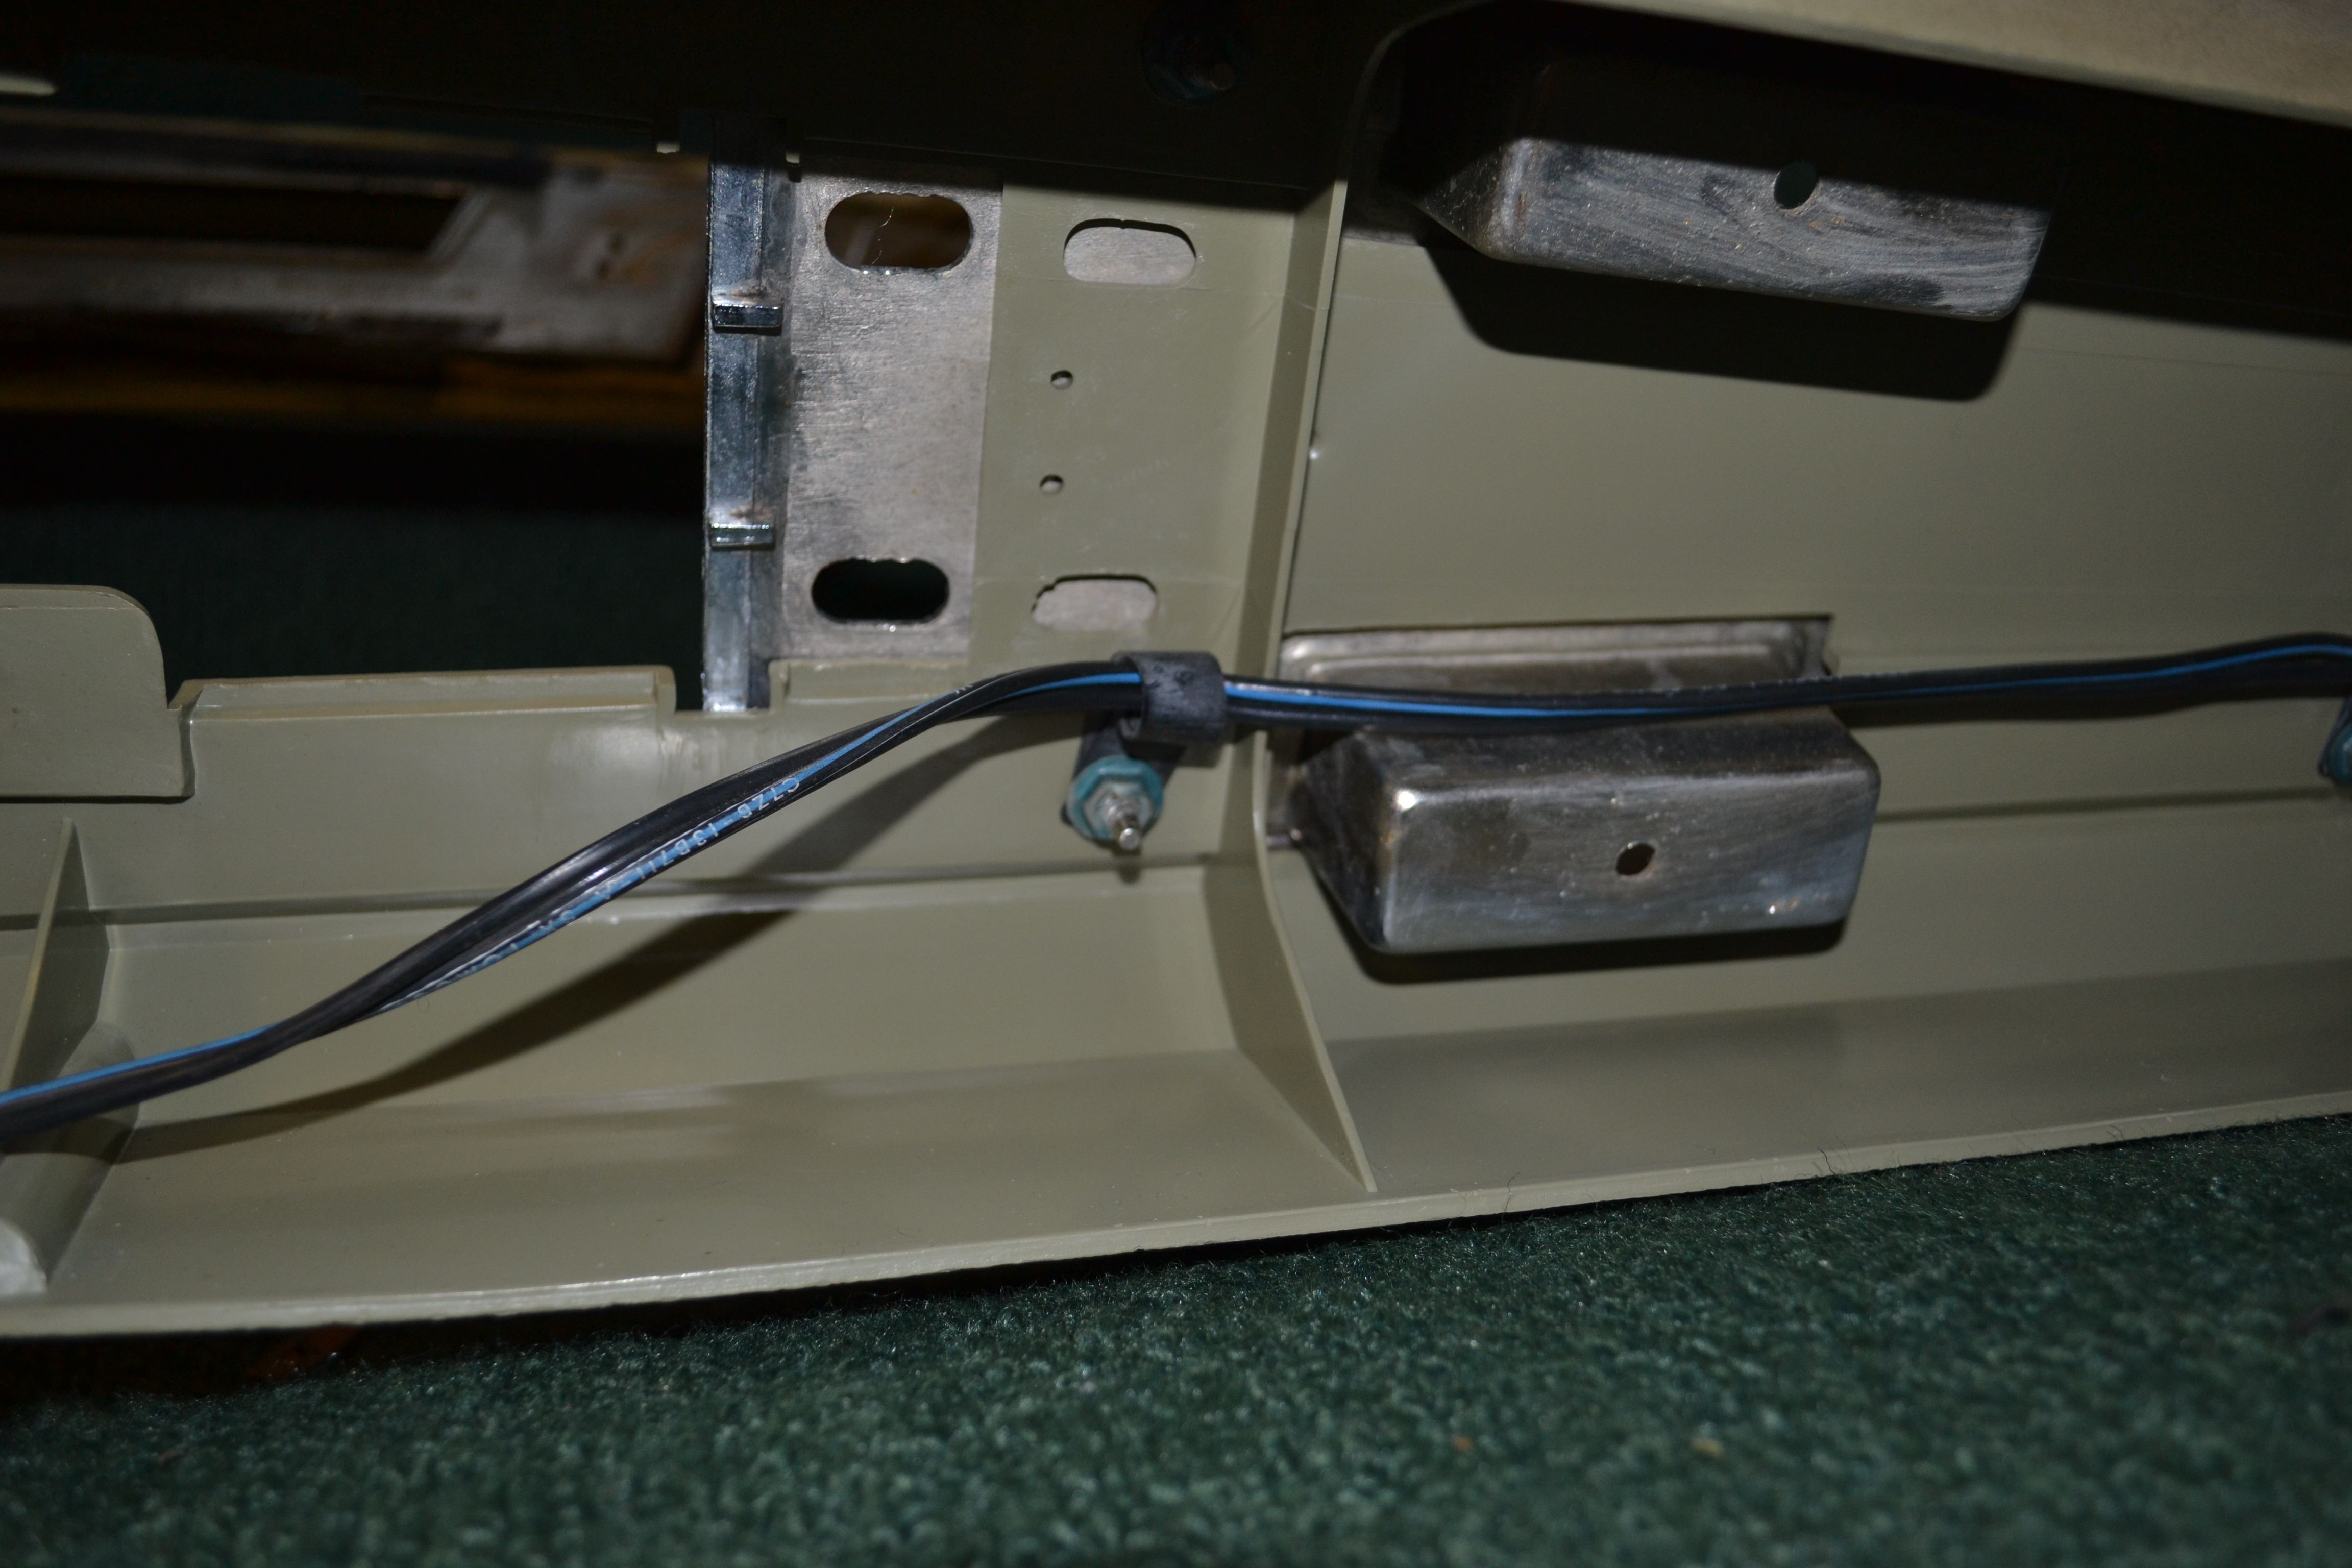 wiring harness under the console my 67 cougar pinterest consoles rh pinterest com